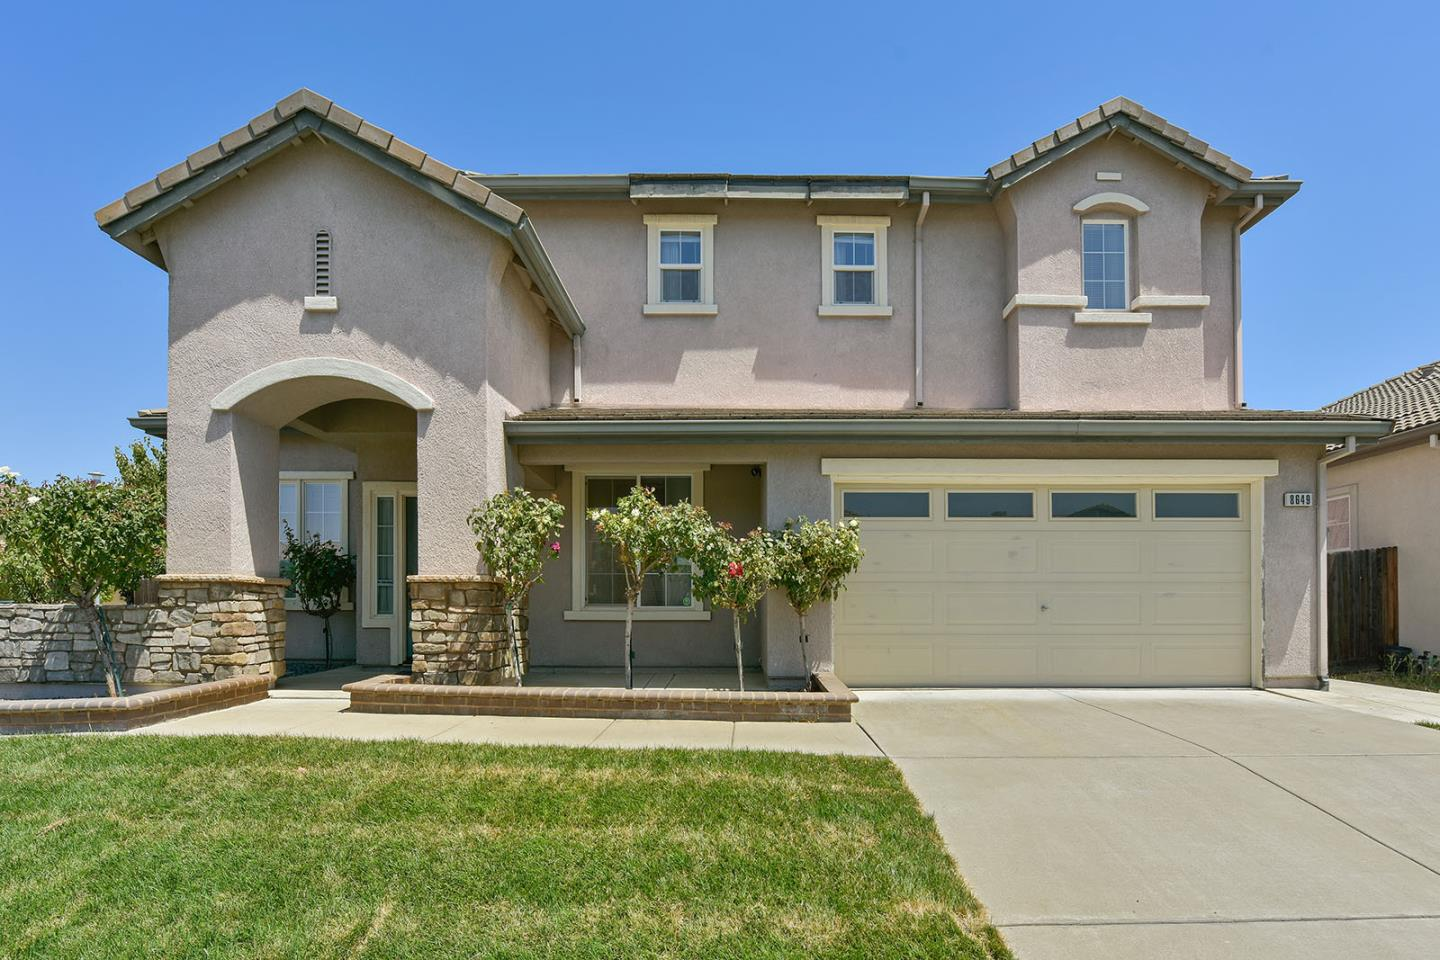 Single Family Home for Sale at 8649 Red Clover Way Elk Grove, California 95624 United States